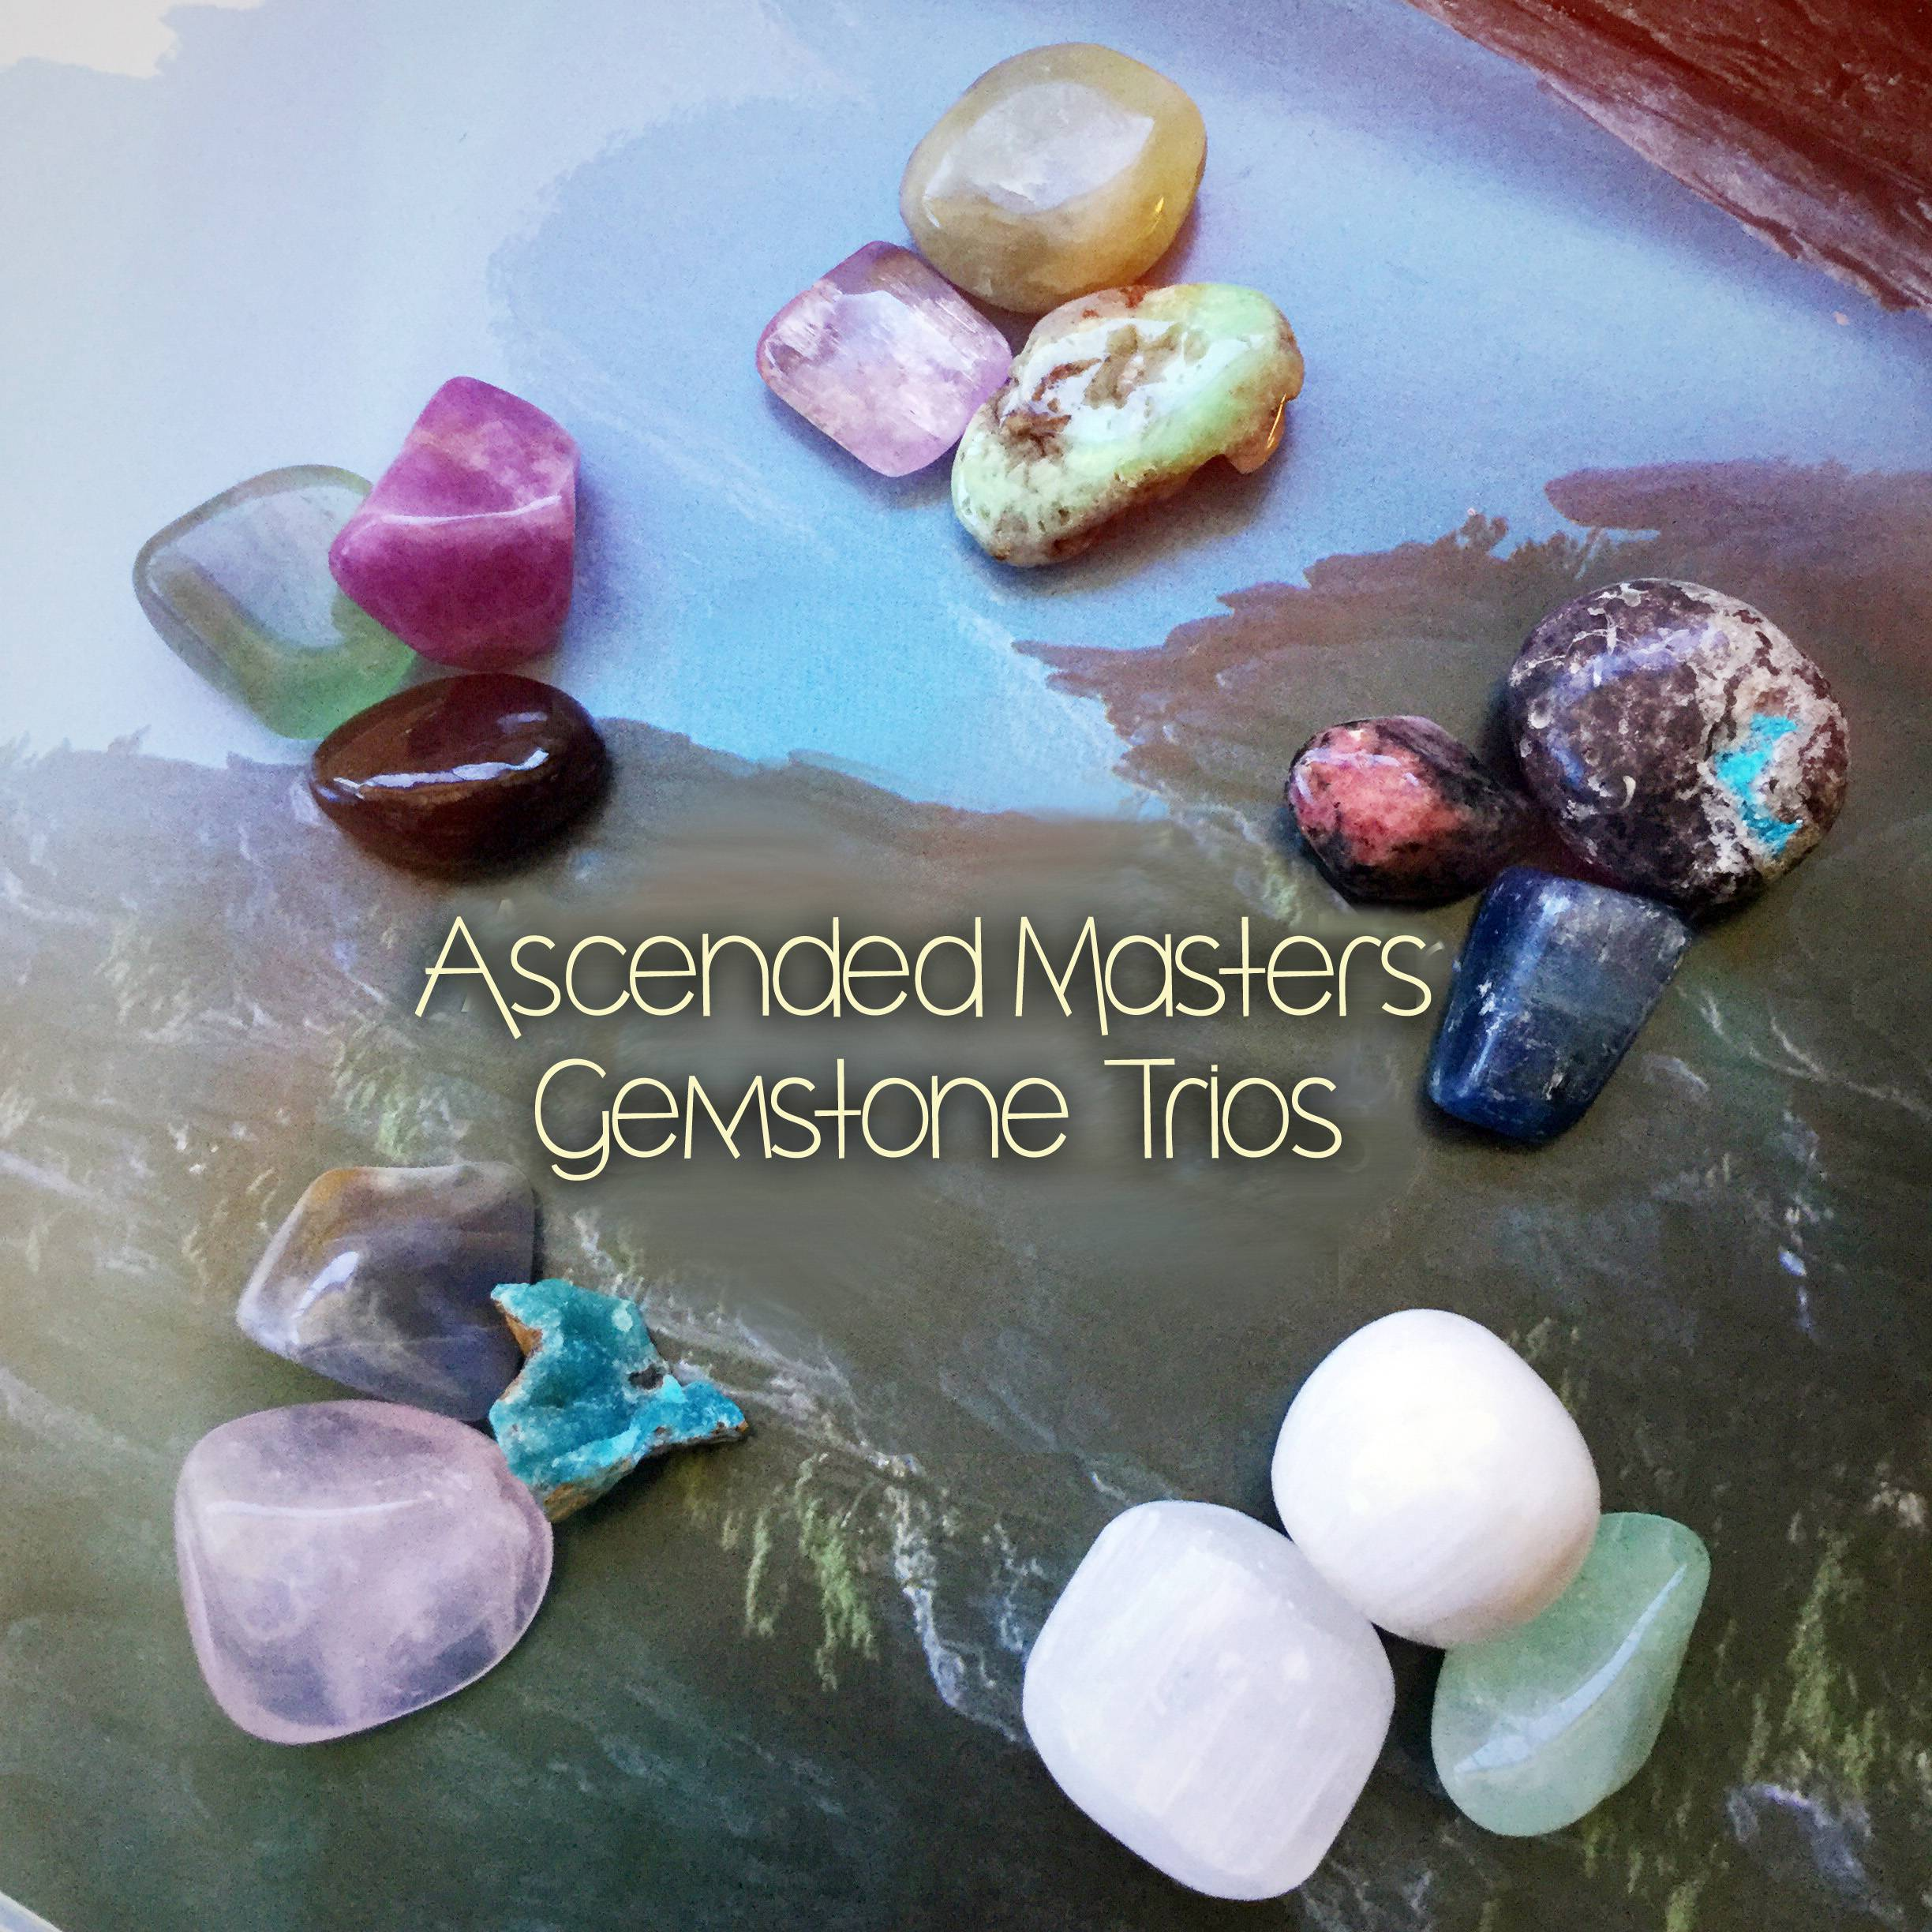 Ascended Masters Gemstone Trios to exalt our spiritual guides and harness  their wisdom